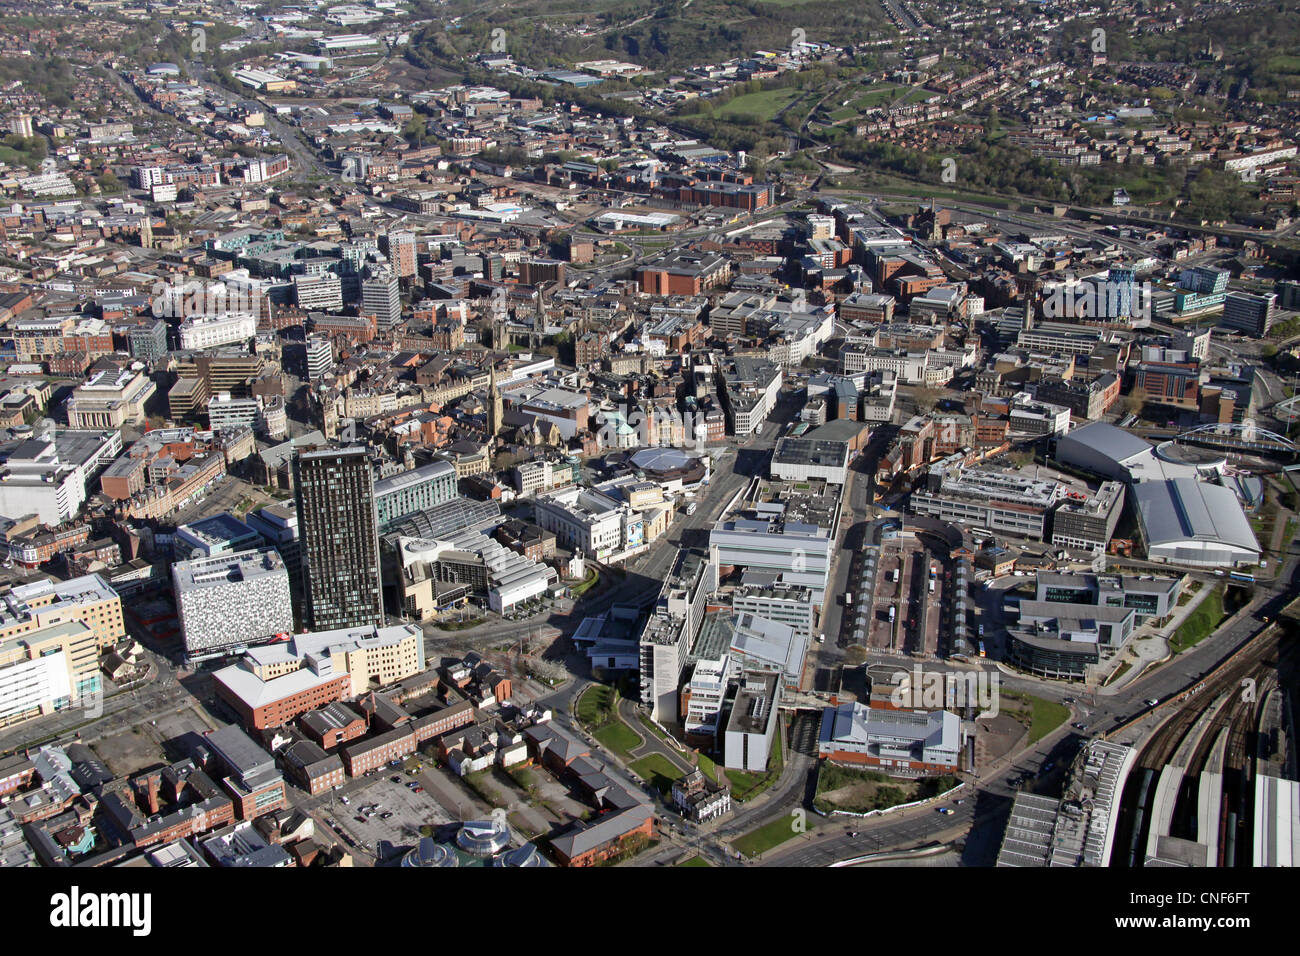 Aerial View Of Sheffield City Centre Stock Photo Royalty